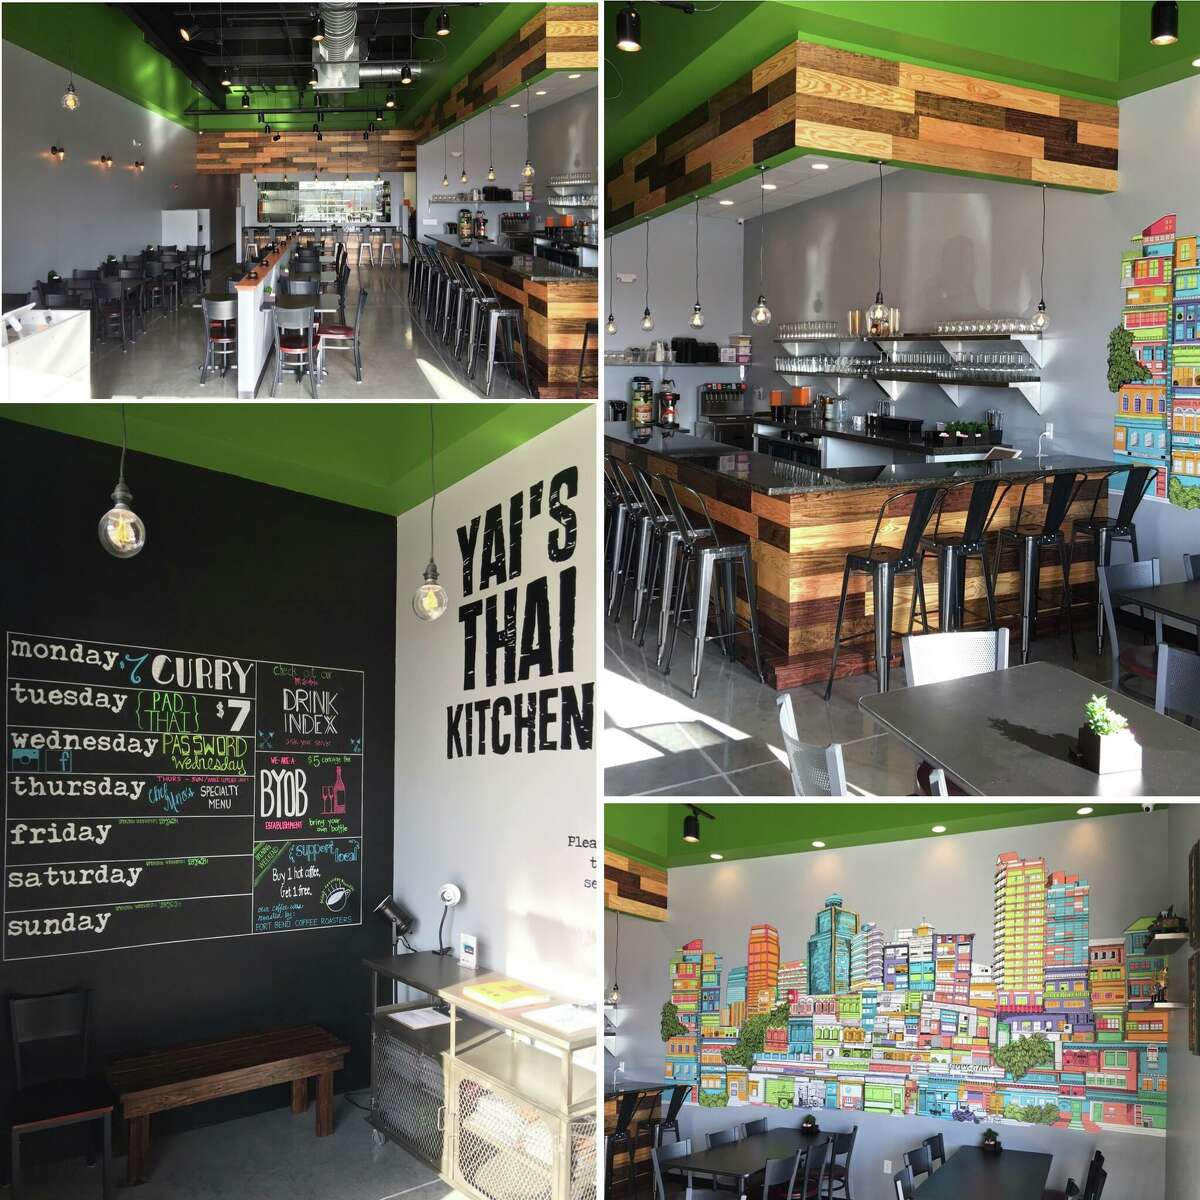 Yai's Thai Kitchen Where: 7035 West Grand Parkway Latest: A family-owned Thai restaurant that debuted in Richmond this month. Interested? Learn more here